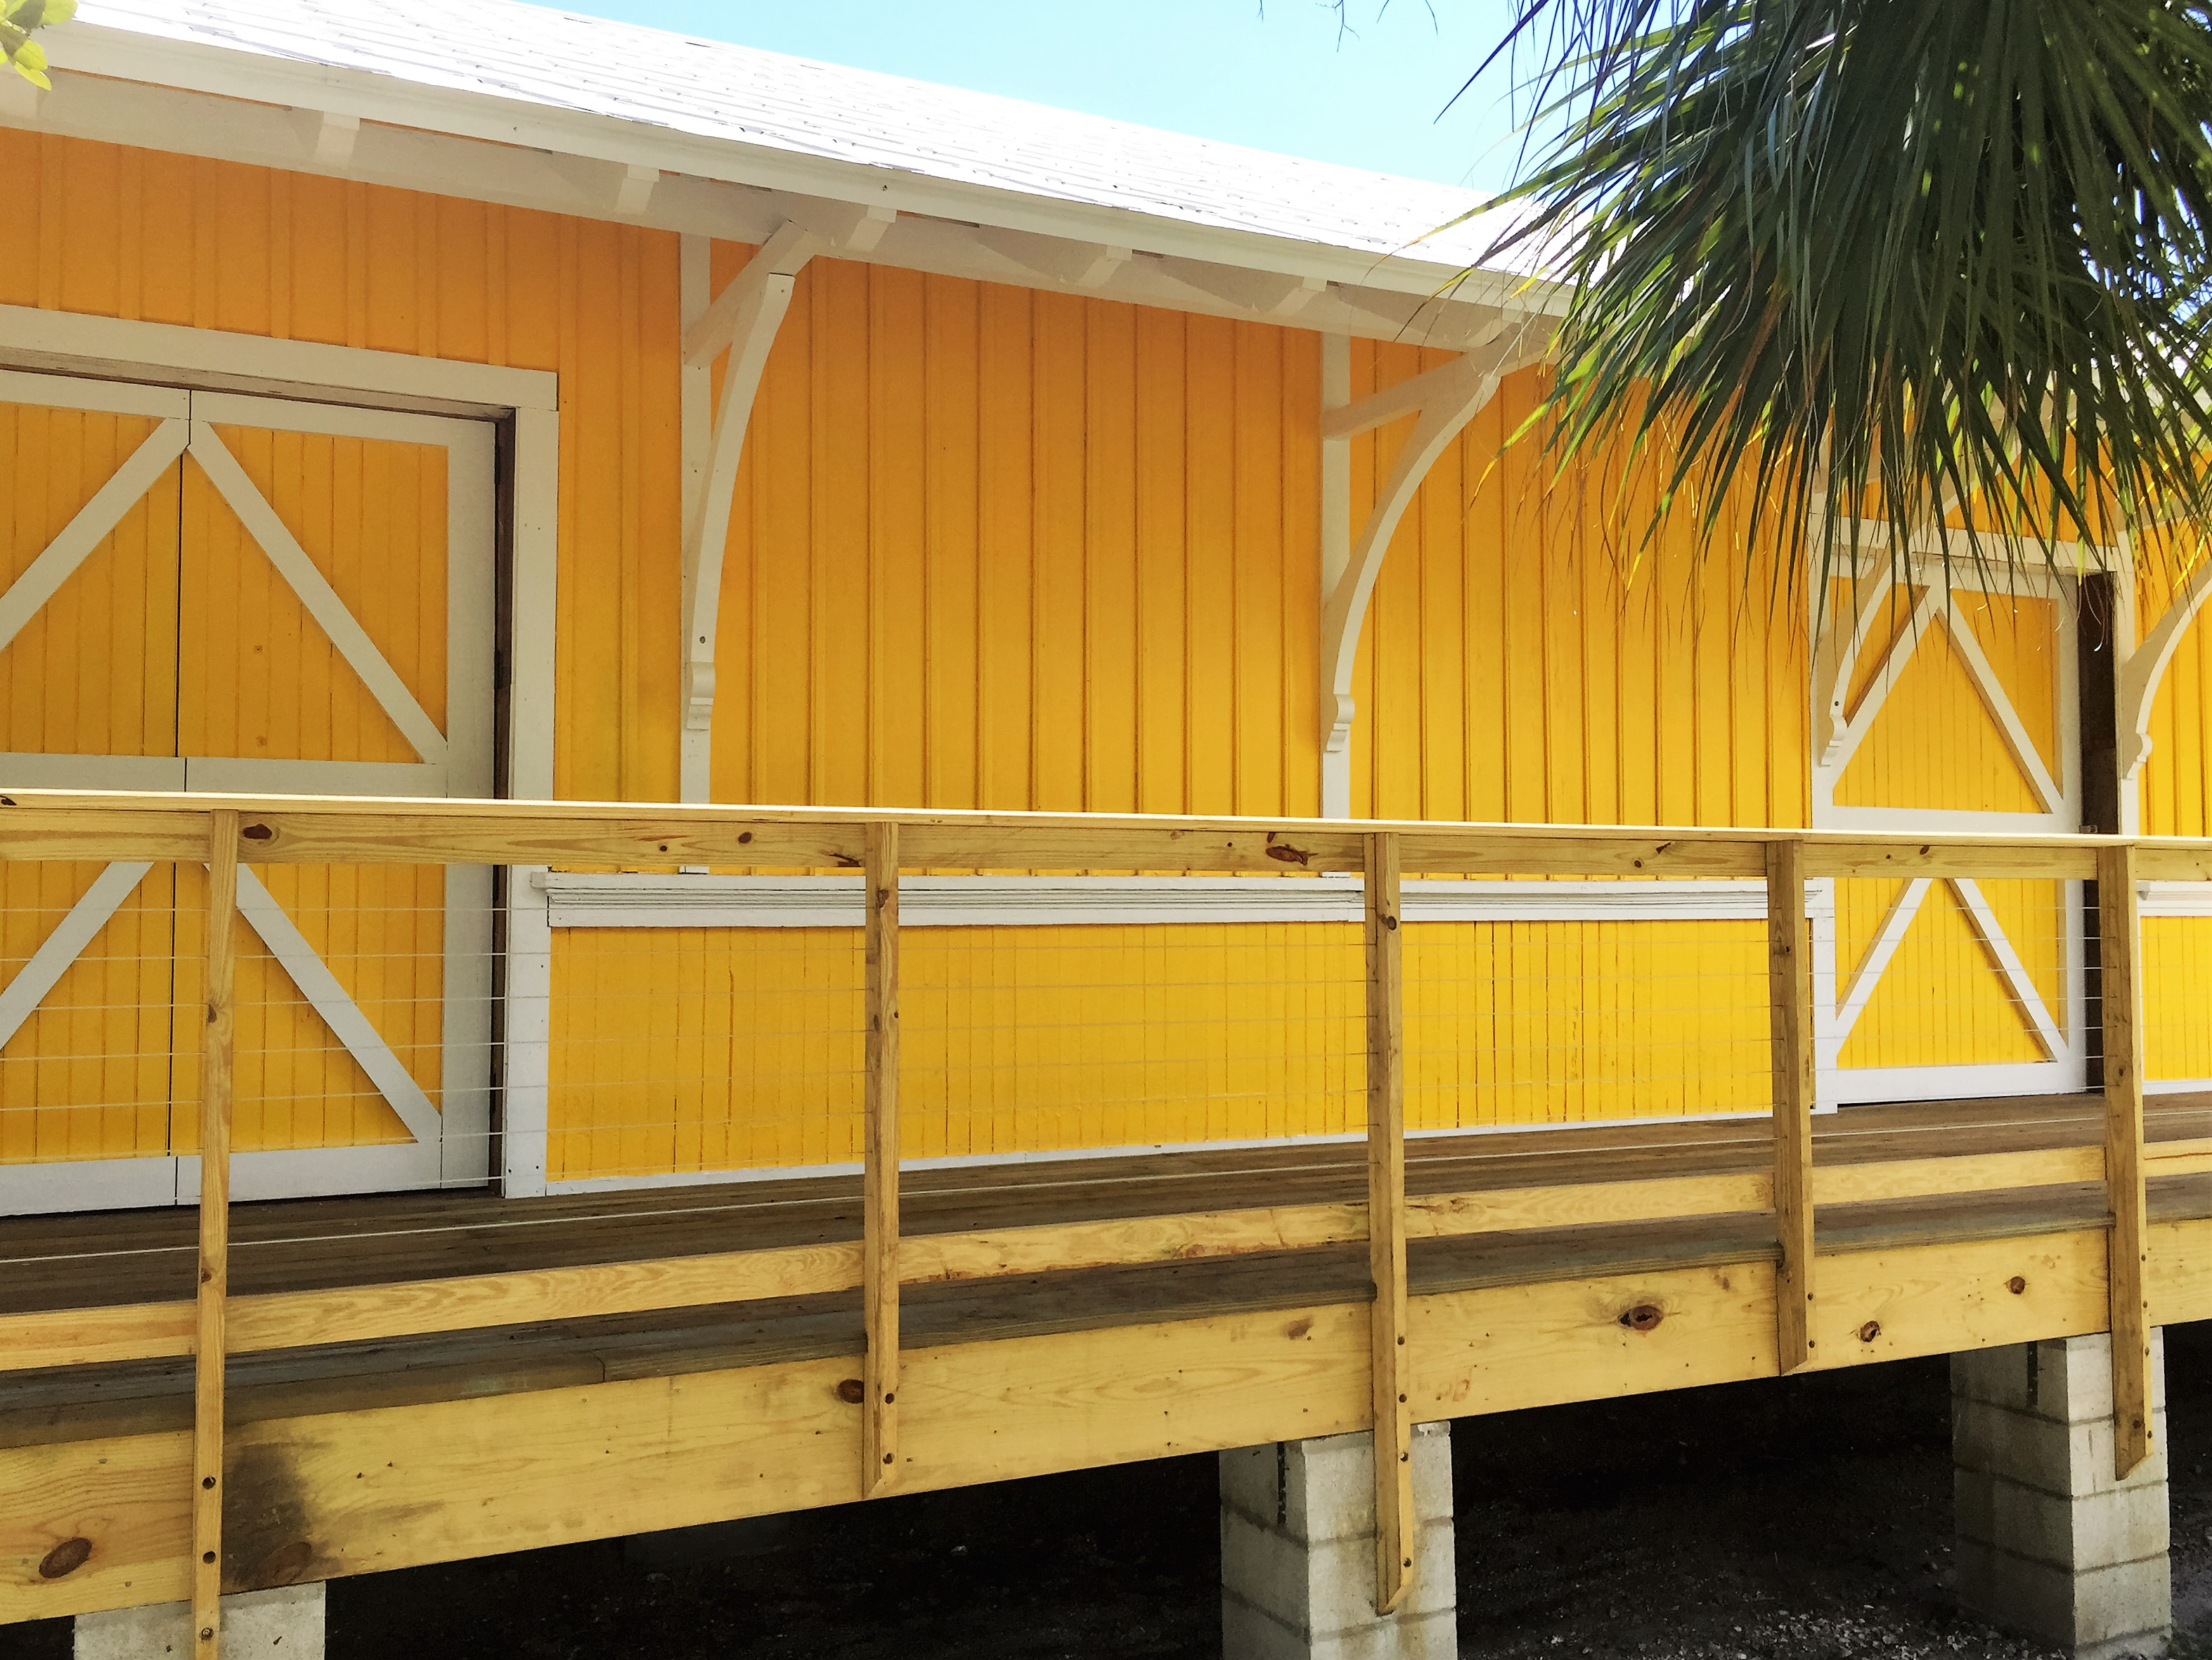 The Historic Train Depot was moved to Sawfish Bay Park in the early-morning hours of April 15, 2012.    It is back home in Jupiter, very close to its original location, and now the restoration work on this historic building can begin.